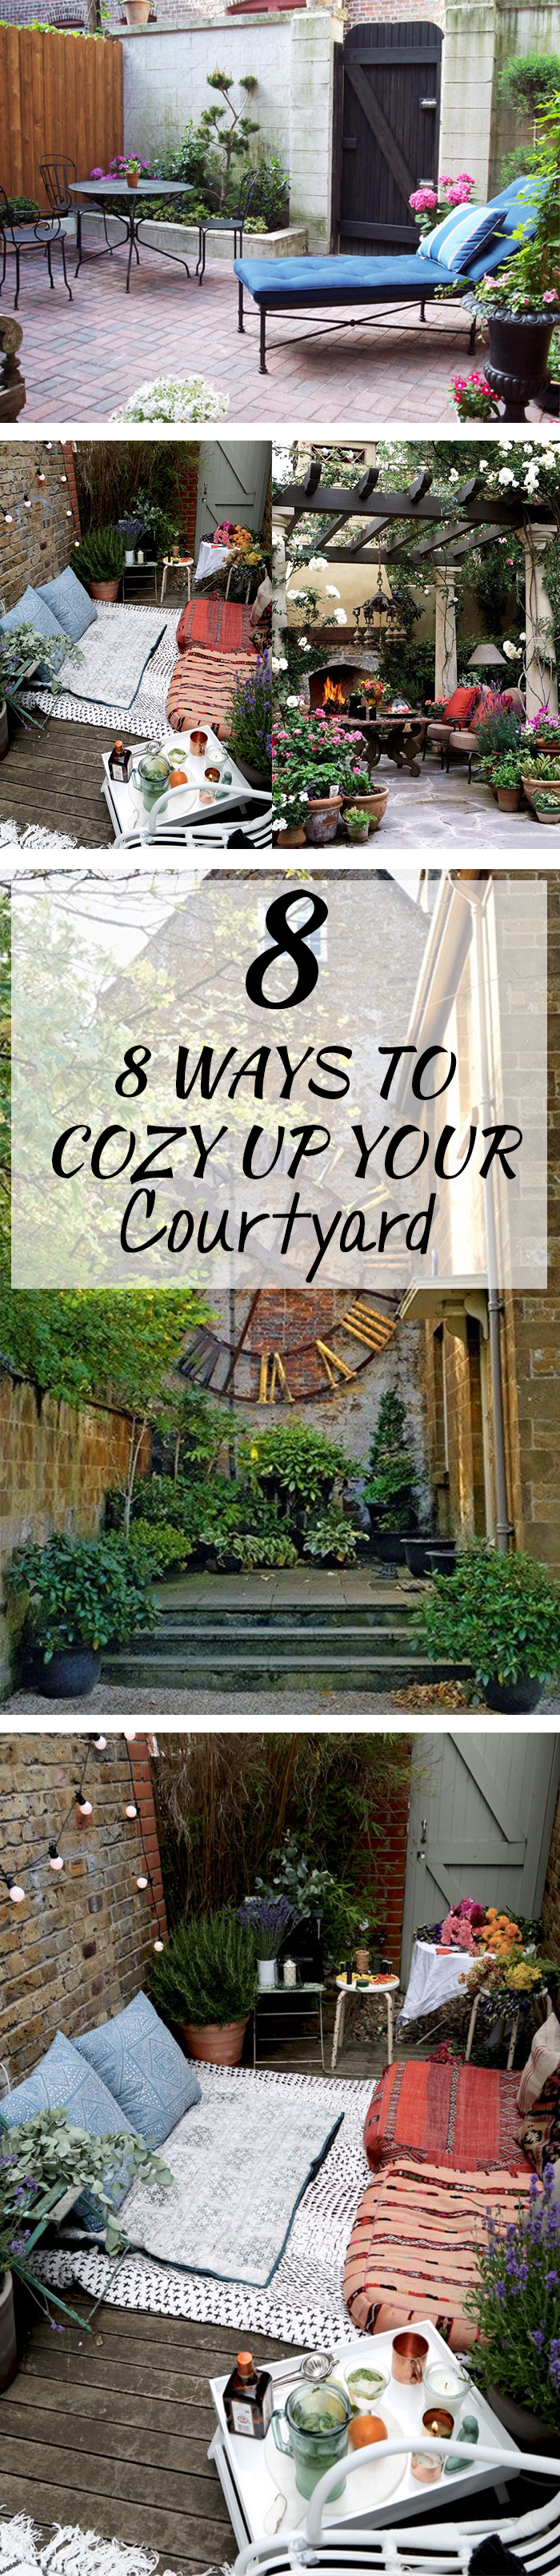 8 Ways to Cozy Up Your Courtyard